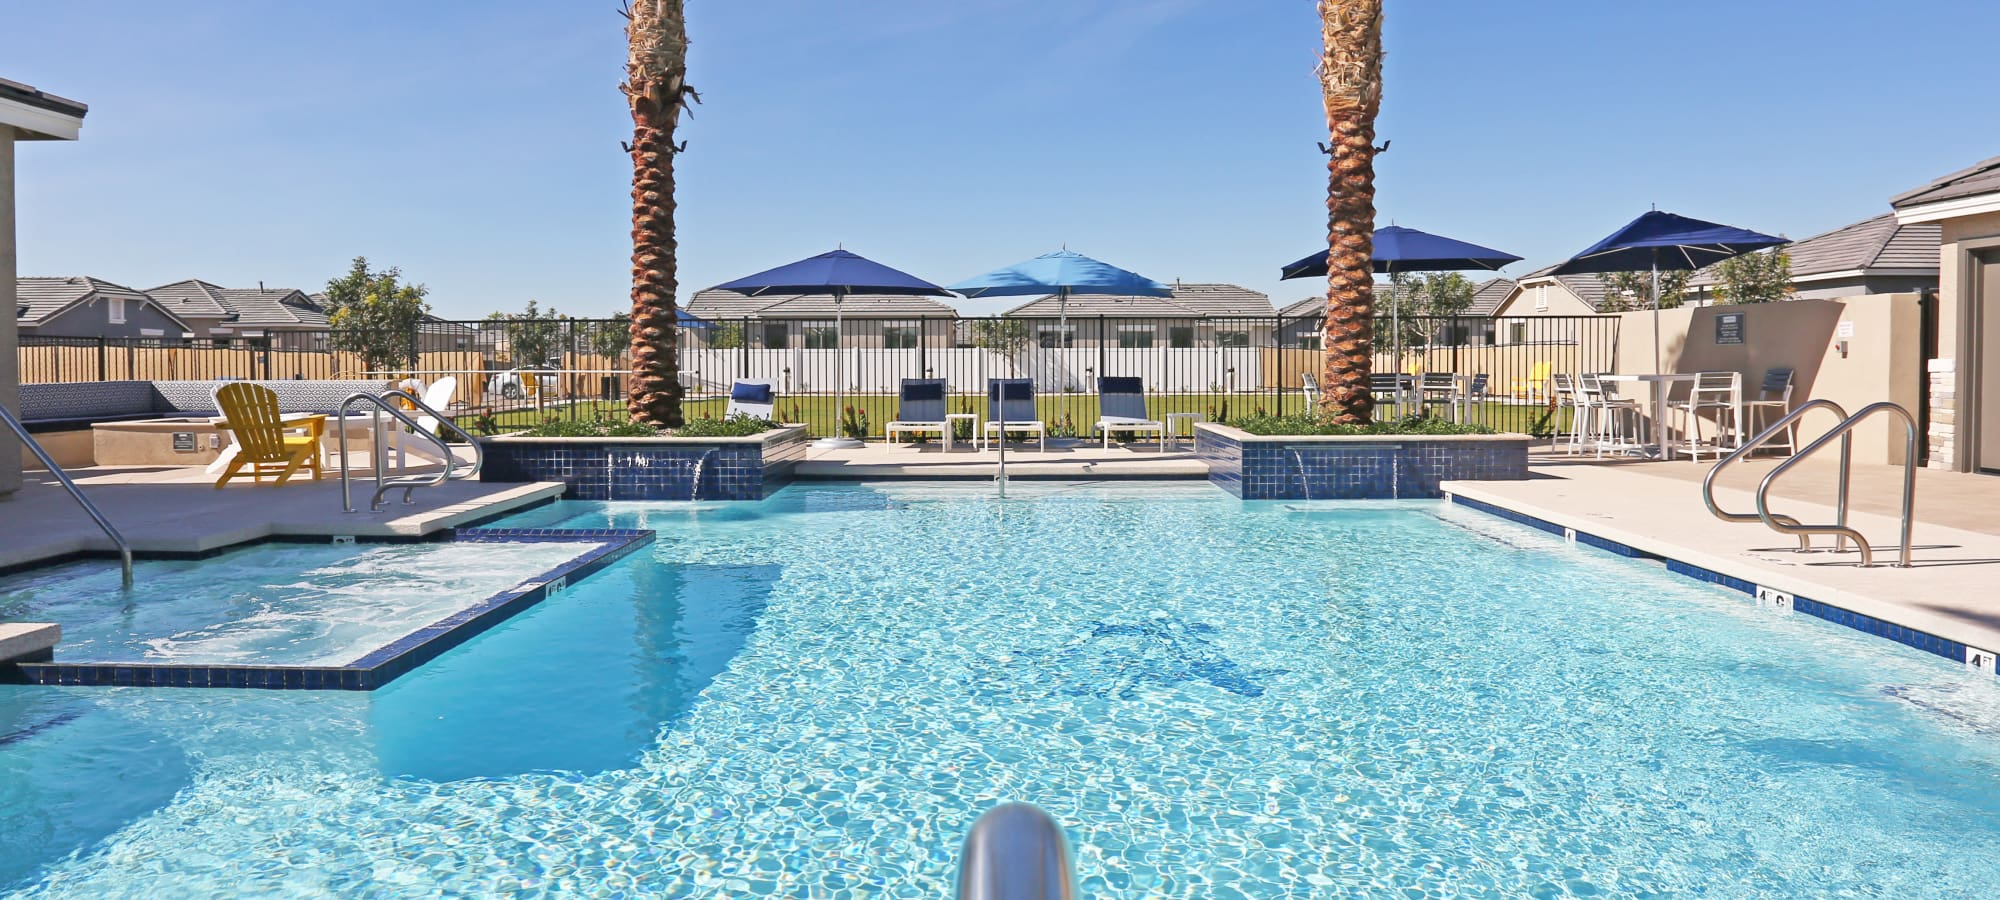 Swimming pool on another beautiful day at Christopher Todd Communities At Marley Park in Surprise, Arizona